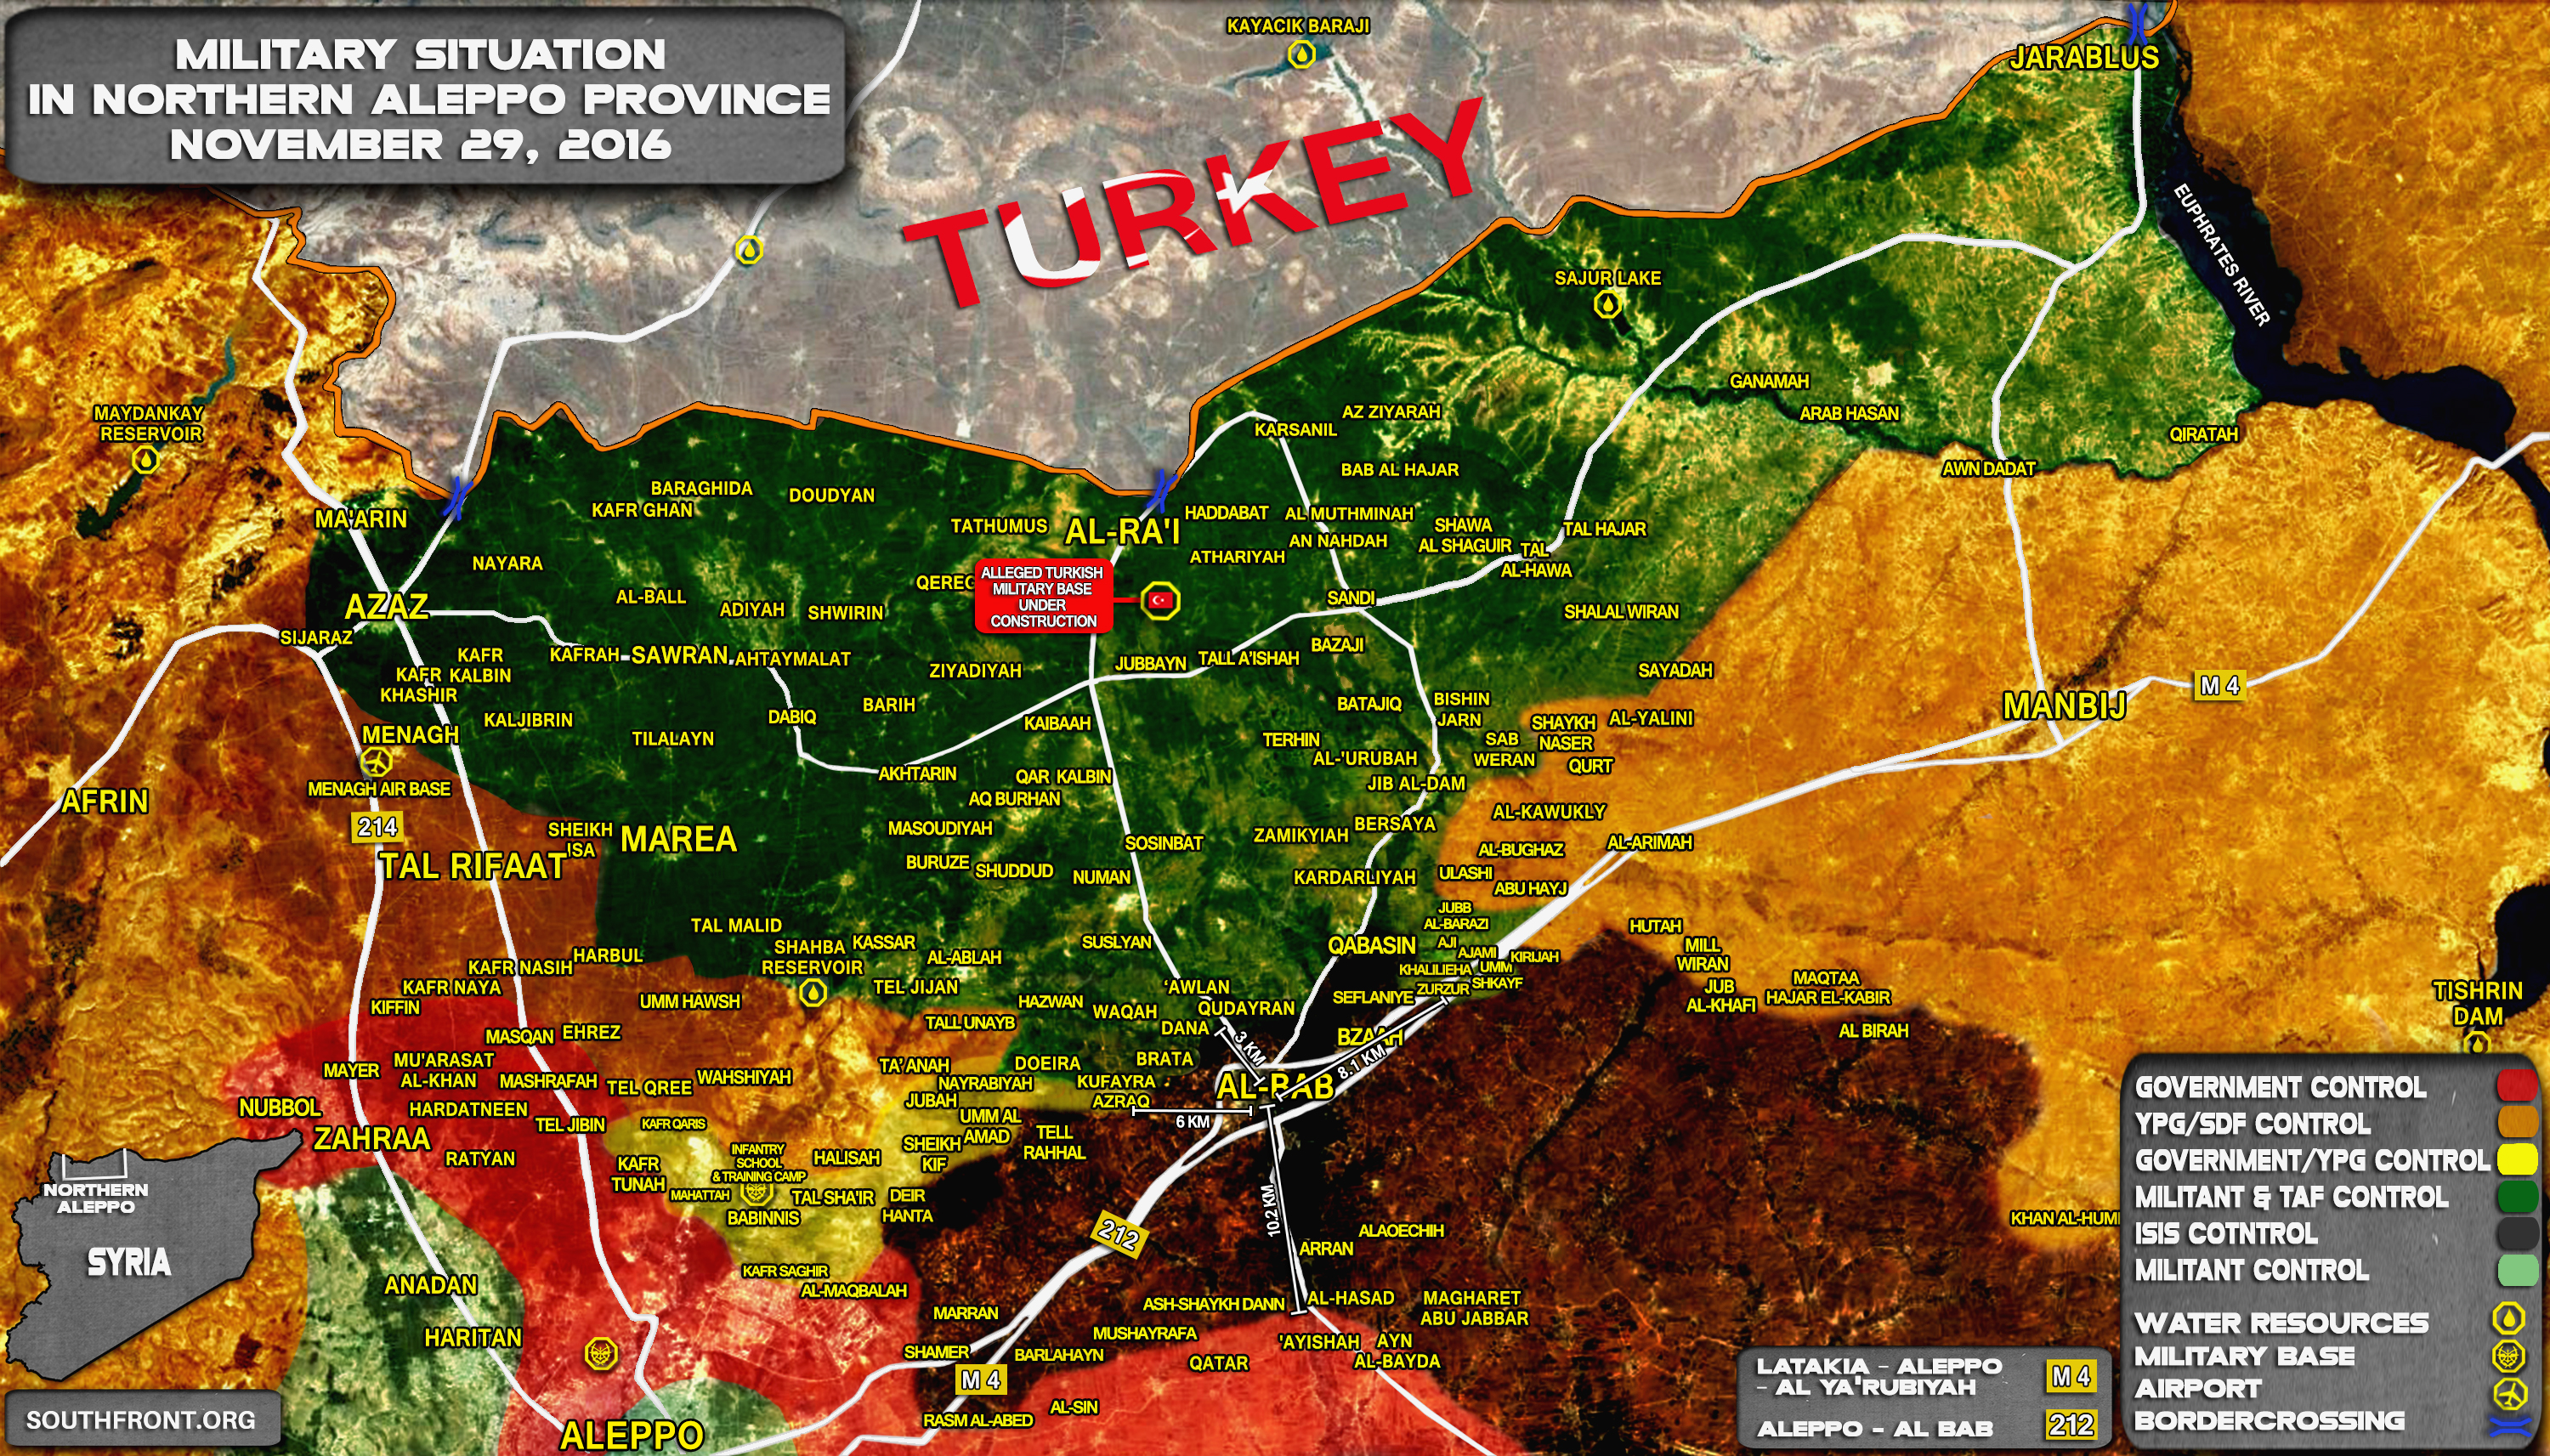 Syria Map: Military Situation in Northern Part of Aleppo Province on November 29, 2016